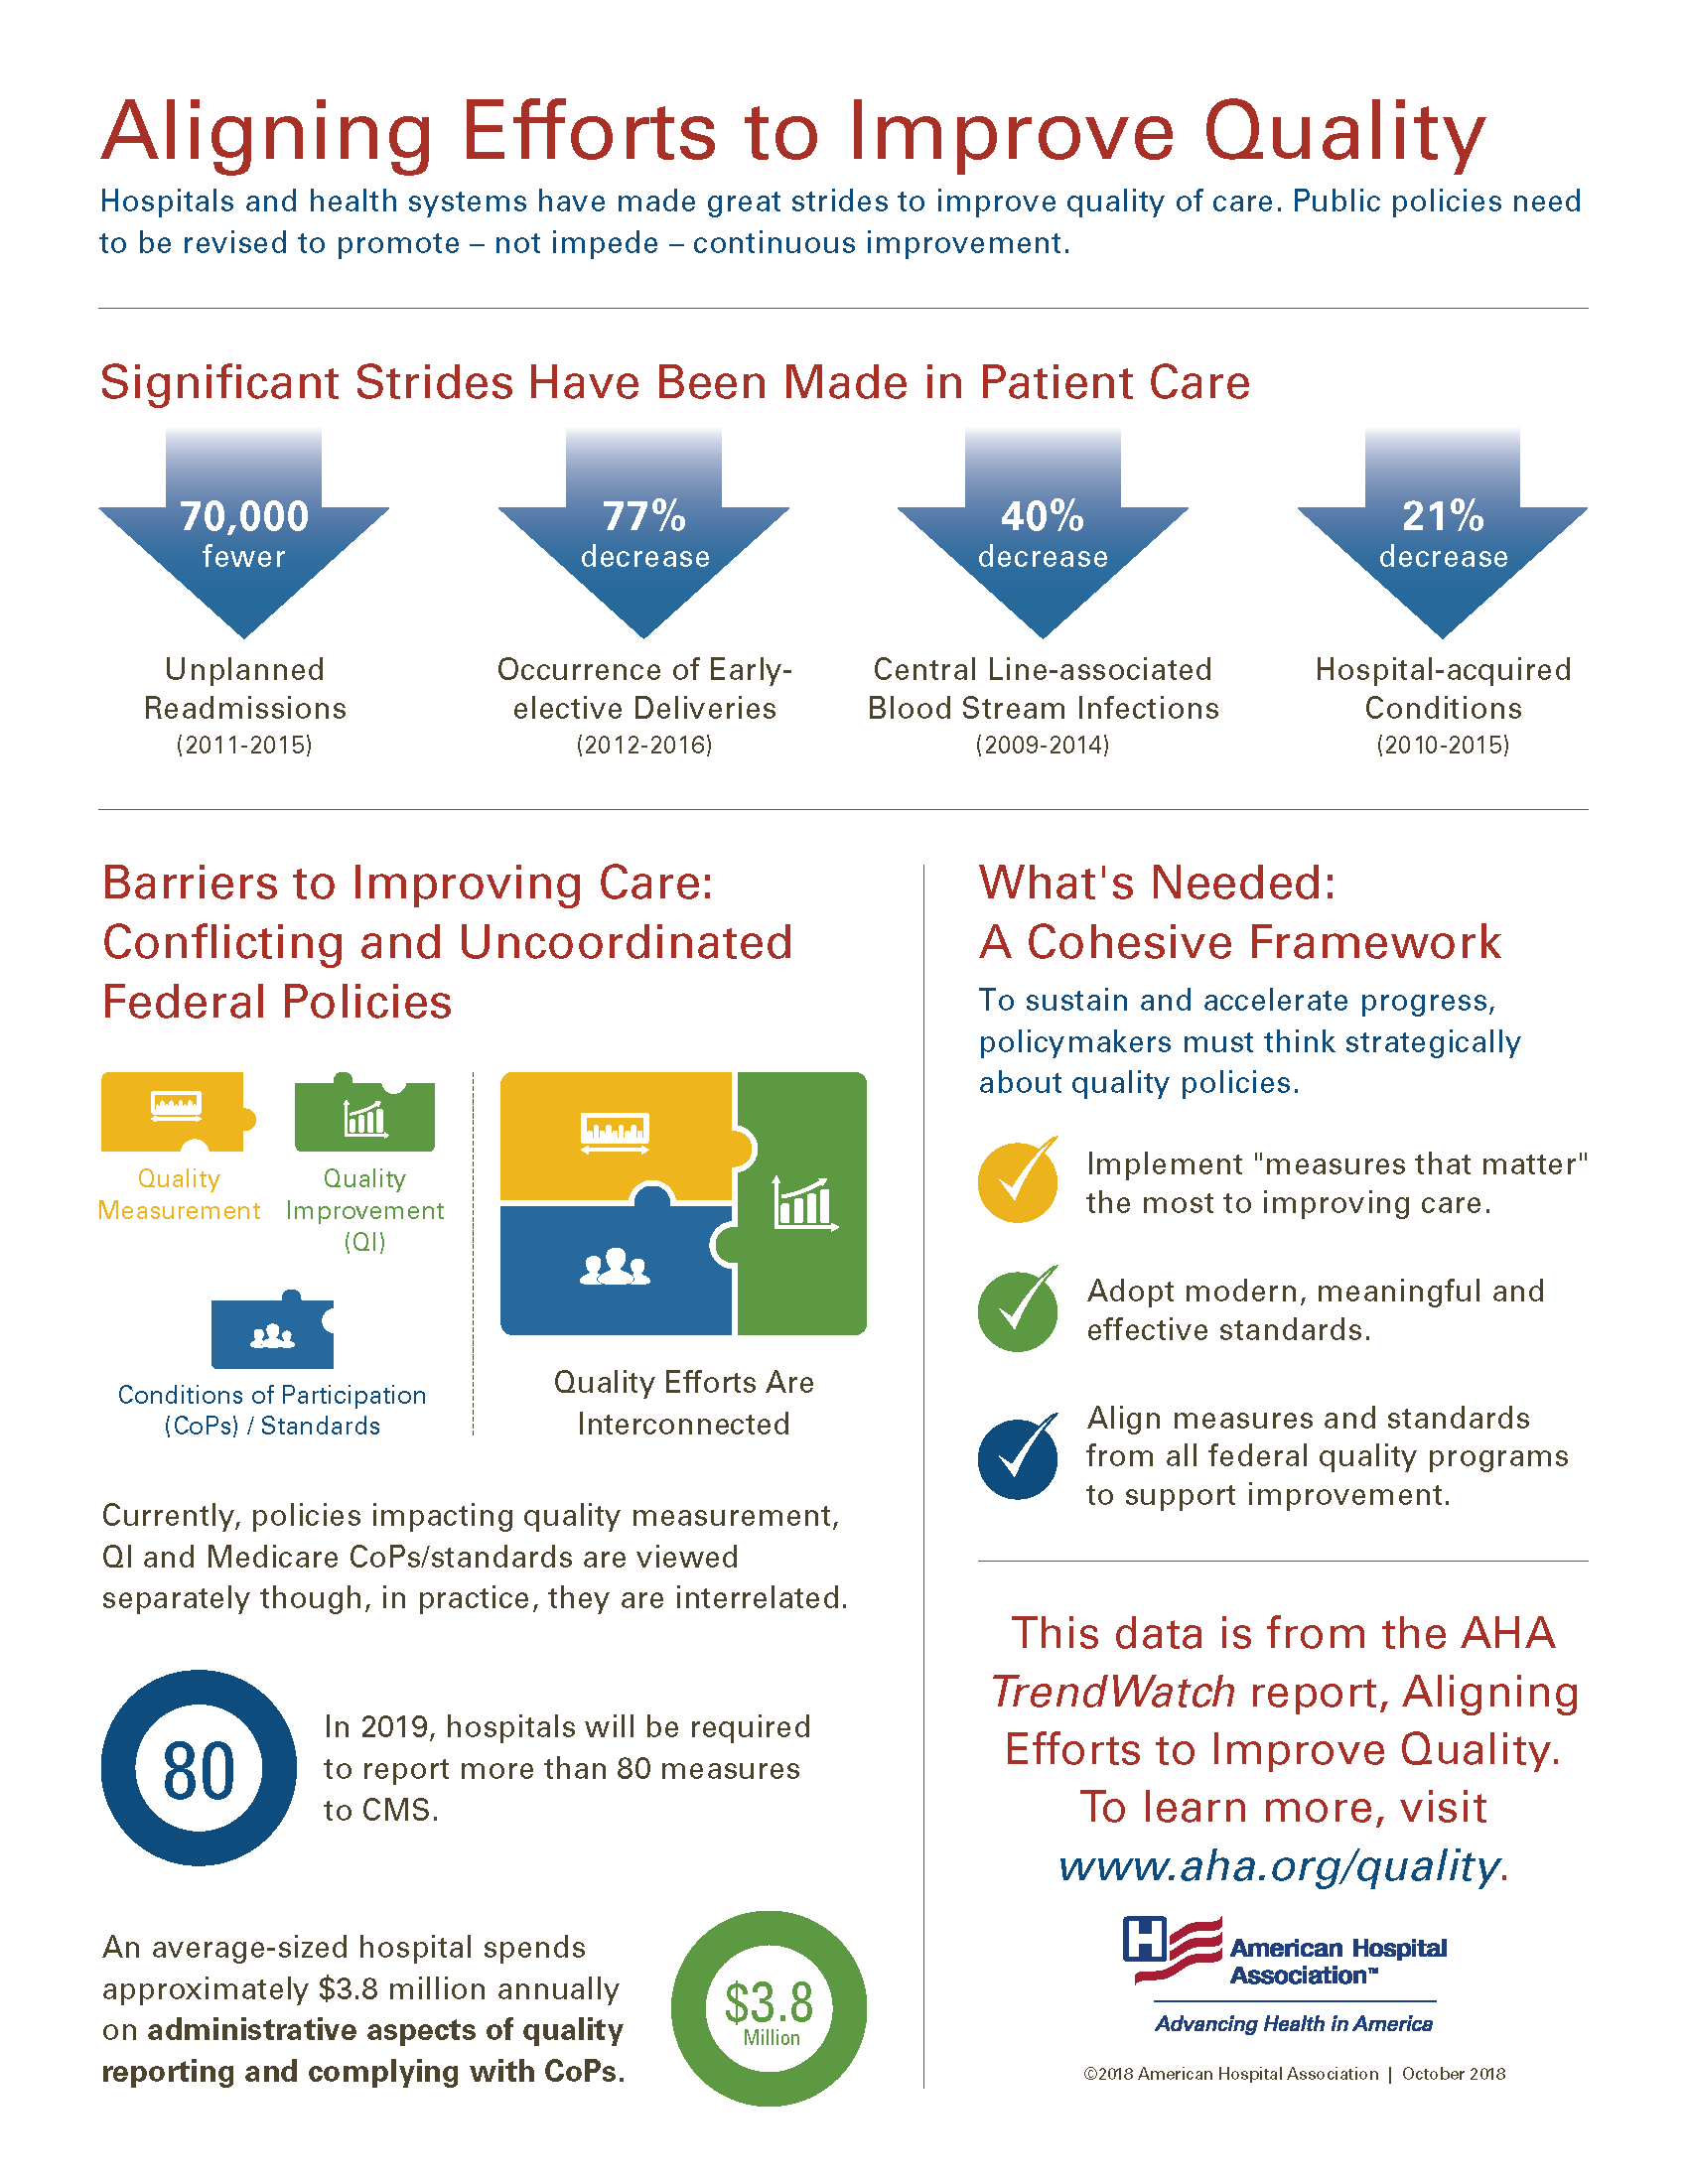 Trendwatch Infographic: Aligning Efforts to Improve Quality image